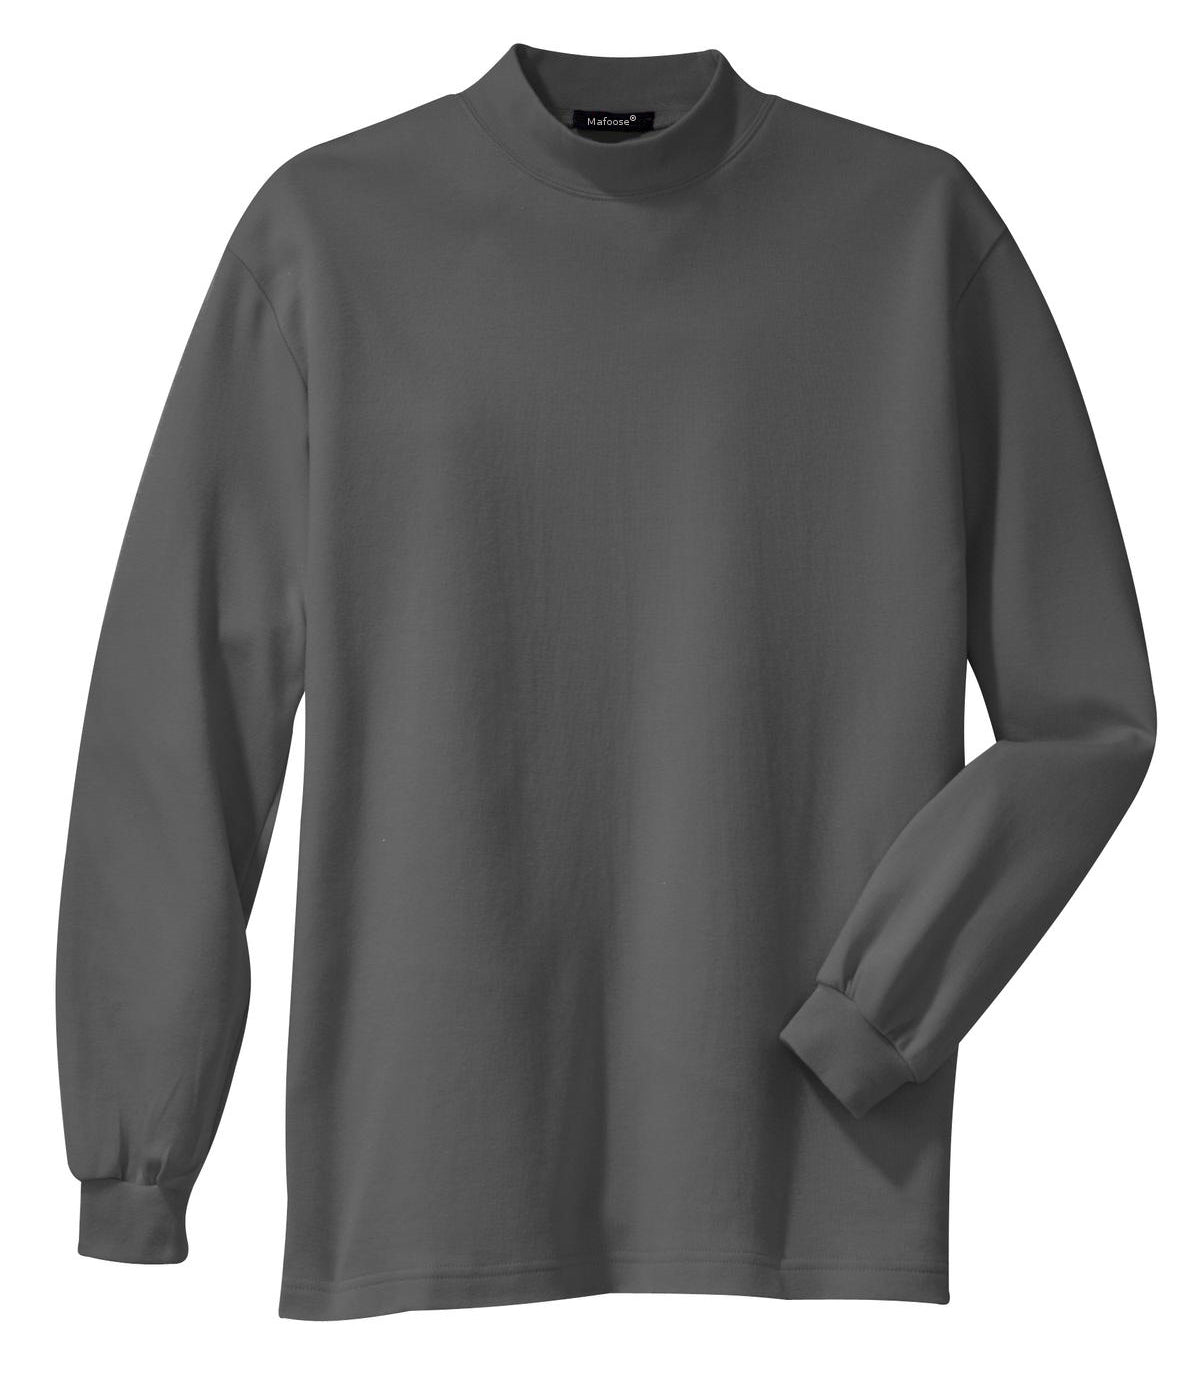 Mafoose Men's Interlock Knit Mock Turtleneck Sweaters Steel Grey-Front